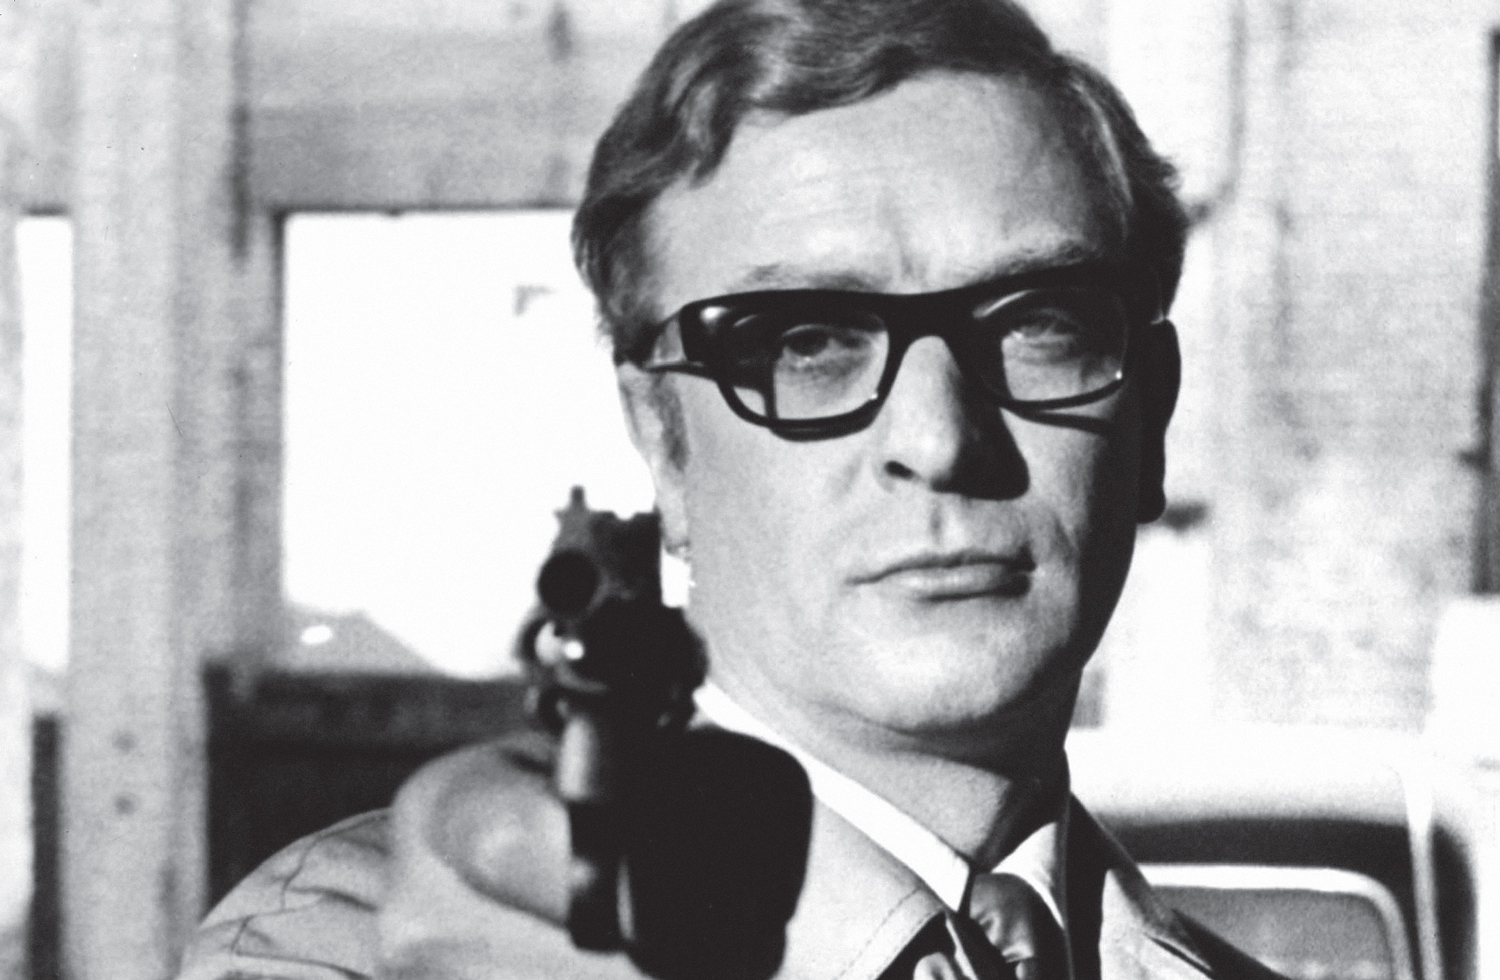 Michael Caine as Harry Palmer, Courtesy of Oliver Goldsmith